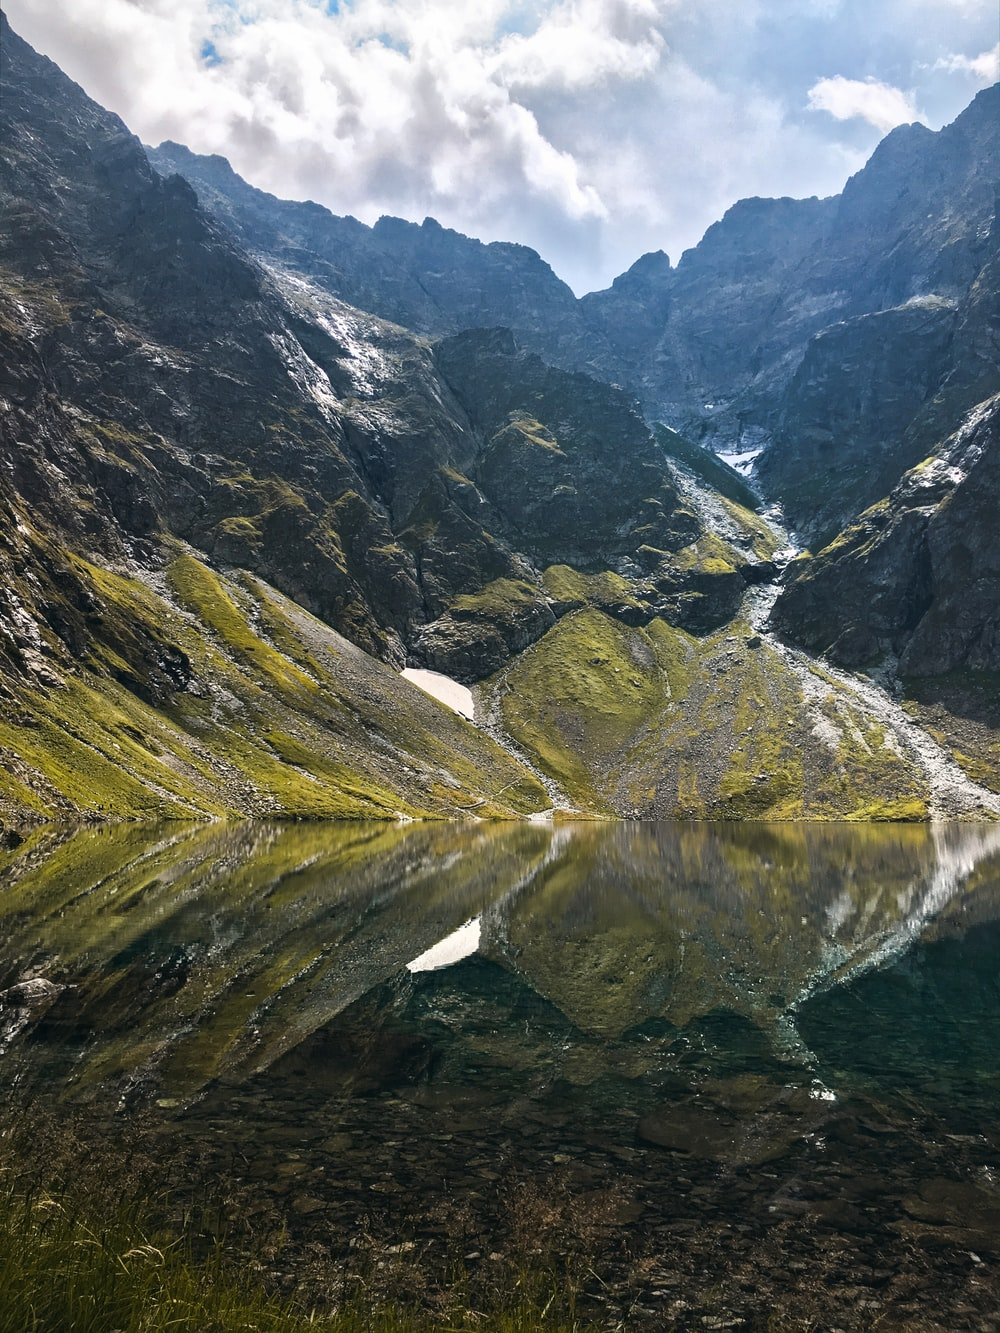 reflection of green mountains on body of water during daytime